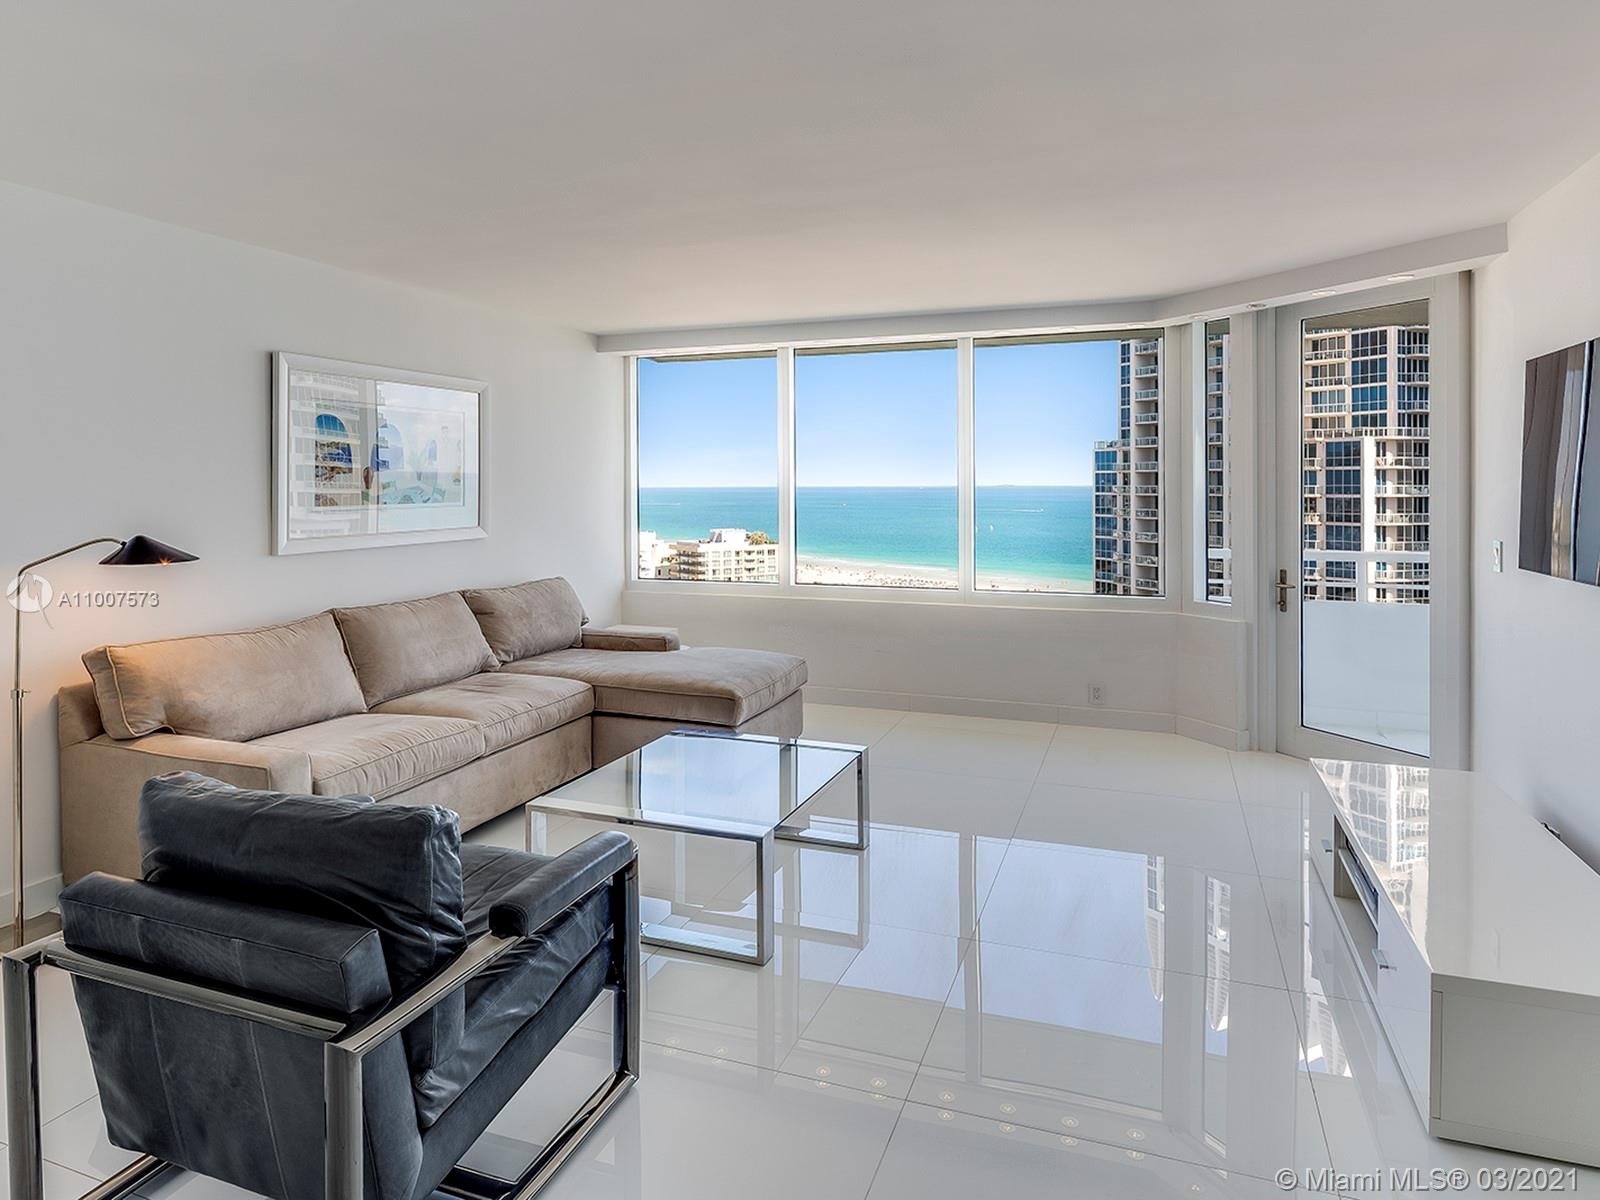 Best deal in the building & lowest priced unit! Completely renovated & rare high floor 1 bedroom, 1.5 baths. White glass marble floors throughout. Open kitchen with white quartz counters. New impact windows with motorized shades. Full service bldg. with 2 pools, lighted tennis courts, business and media centers and 24 hr fitness center. High floor views of ocean, South Beach and Govt Cut. S of 5th neighborhood with retail, restaurants and steps to the beach. Building is nearing completion to major renovation to pool, tennis courts, hallways & fitness center! Easy to show.